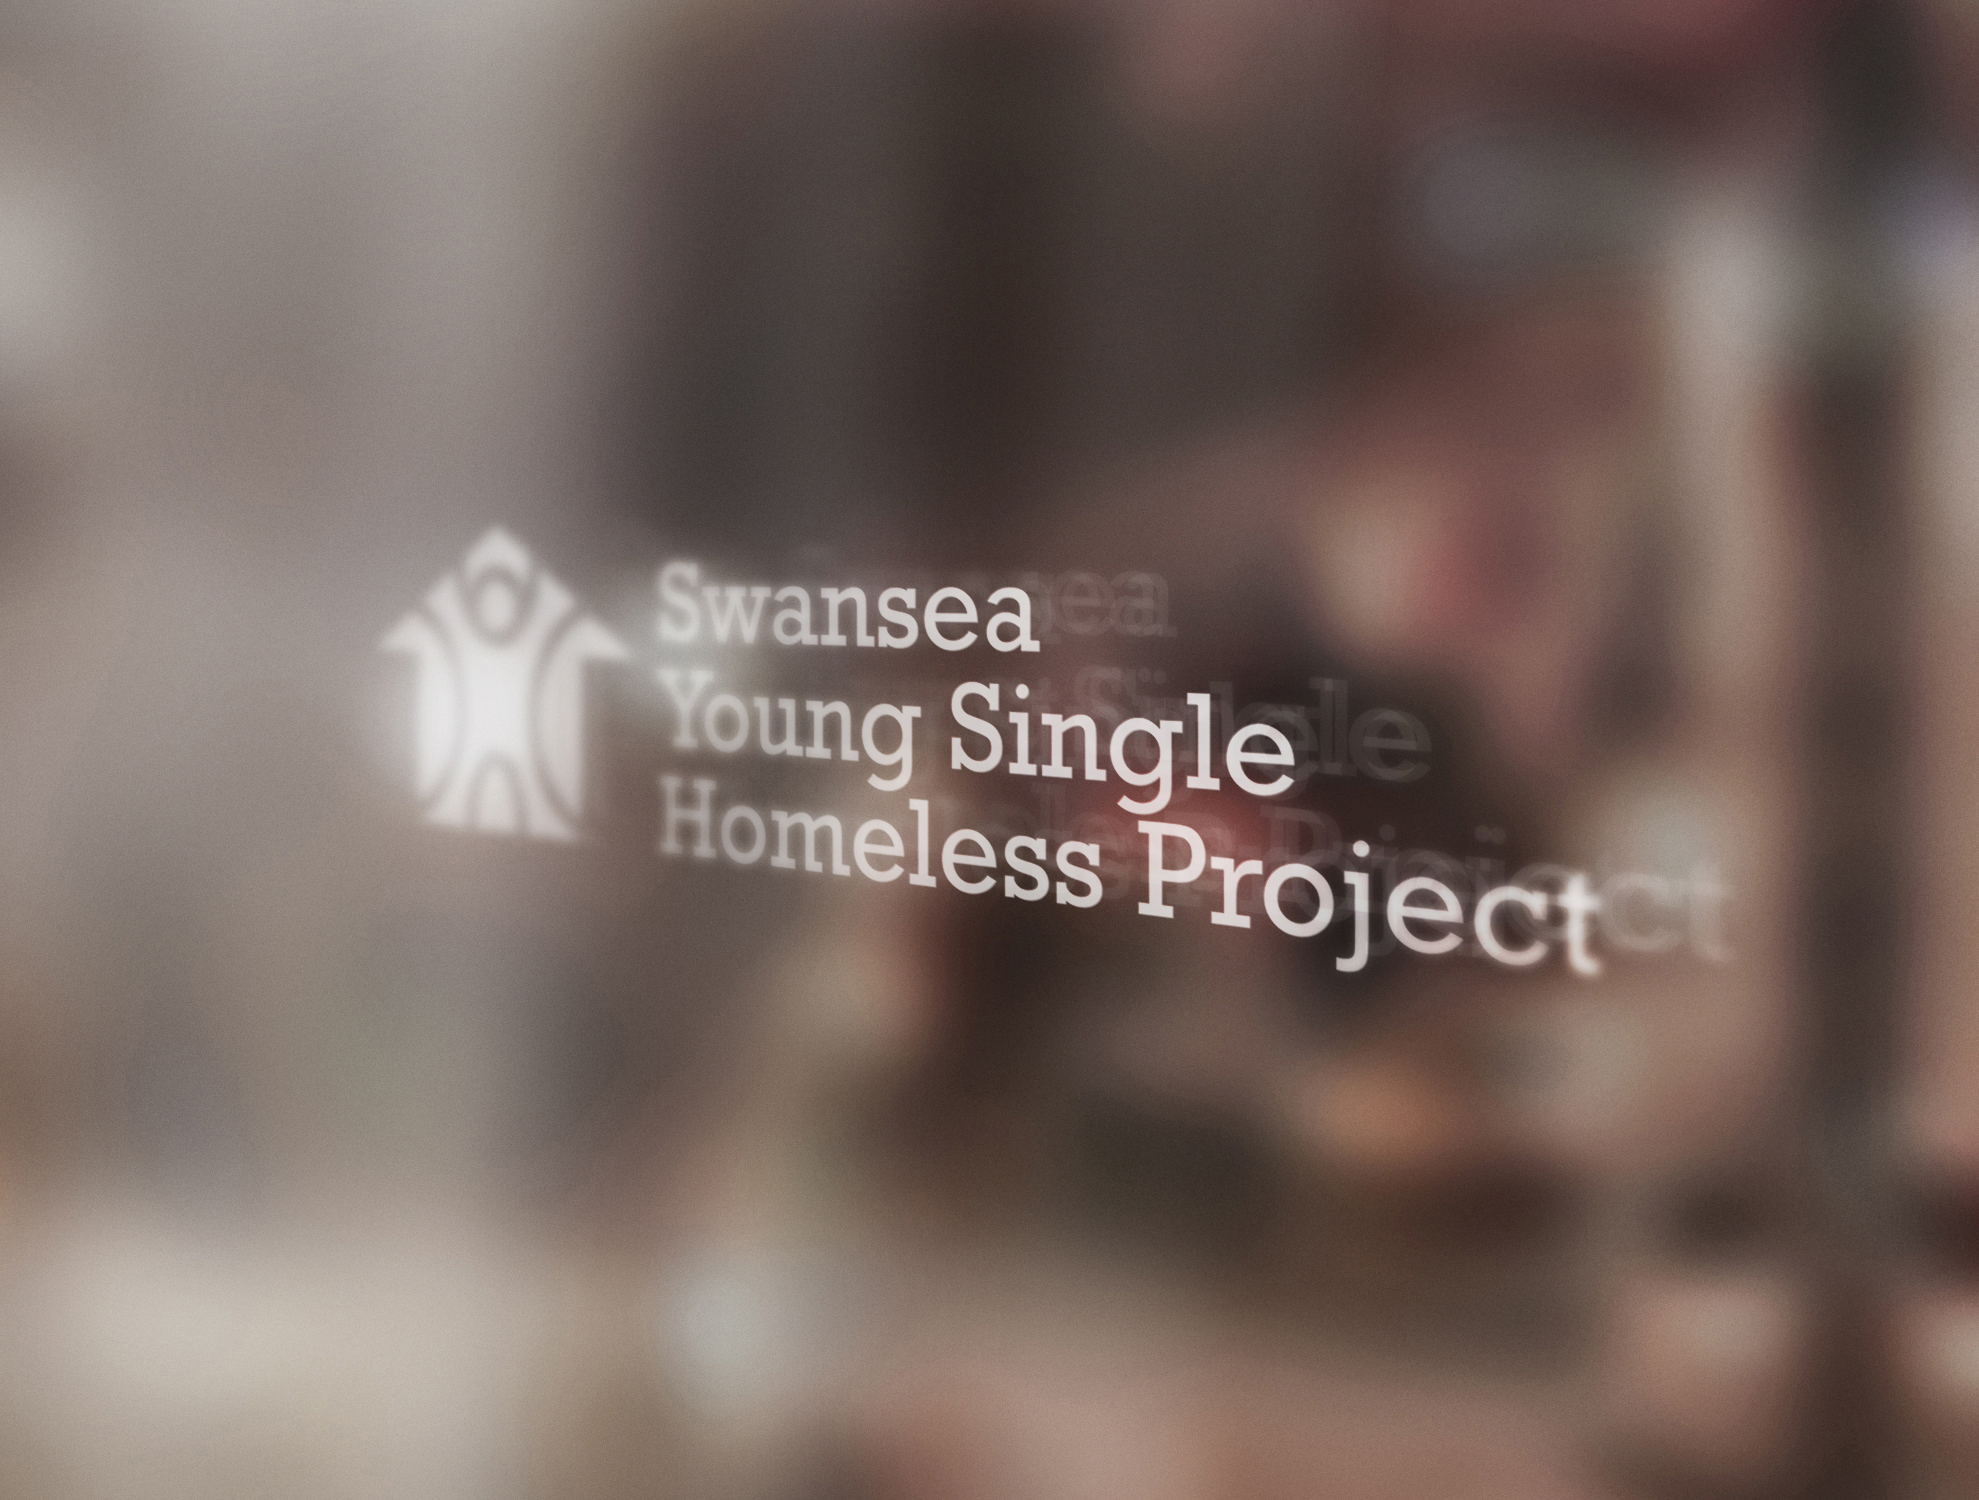 Swansea Young Single Homeless Project